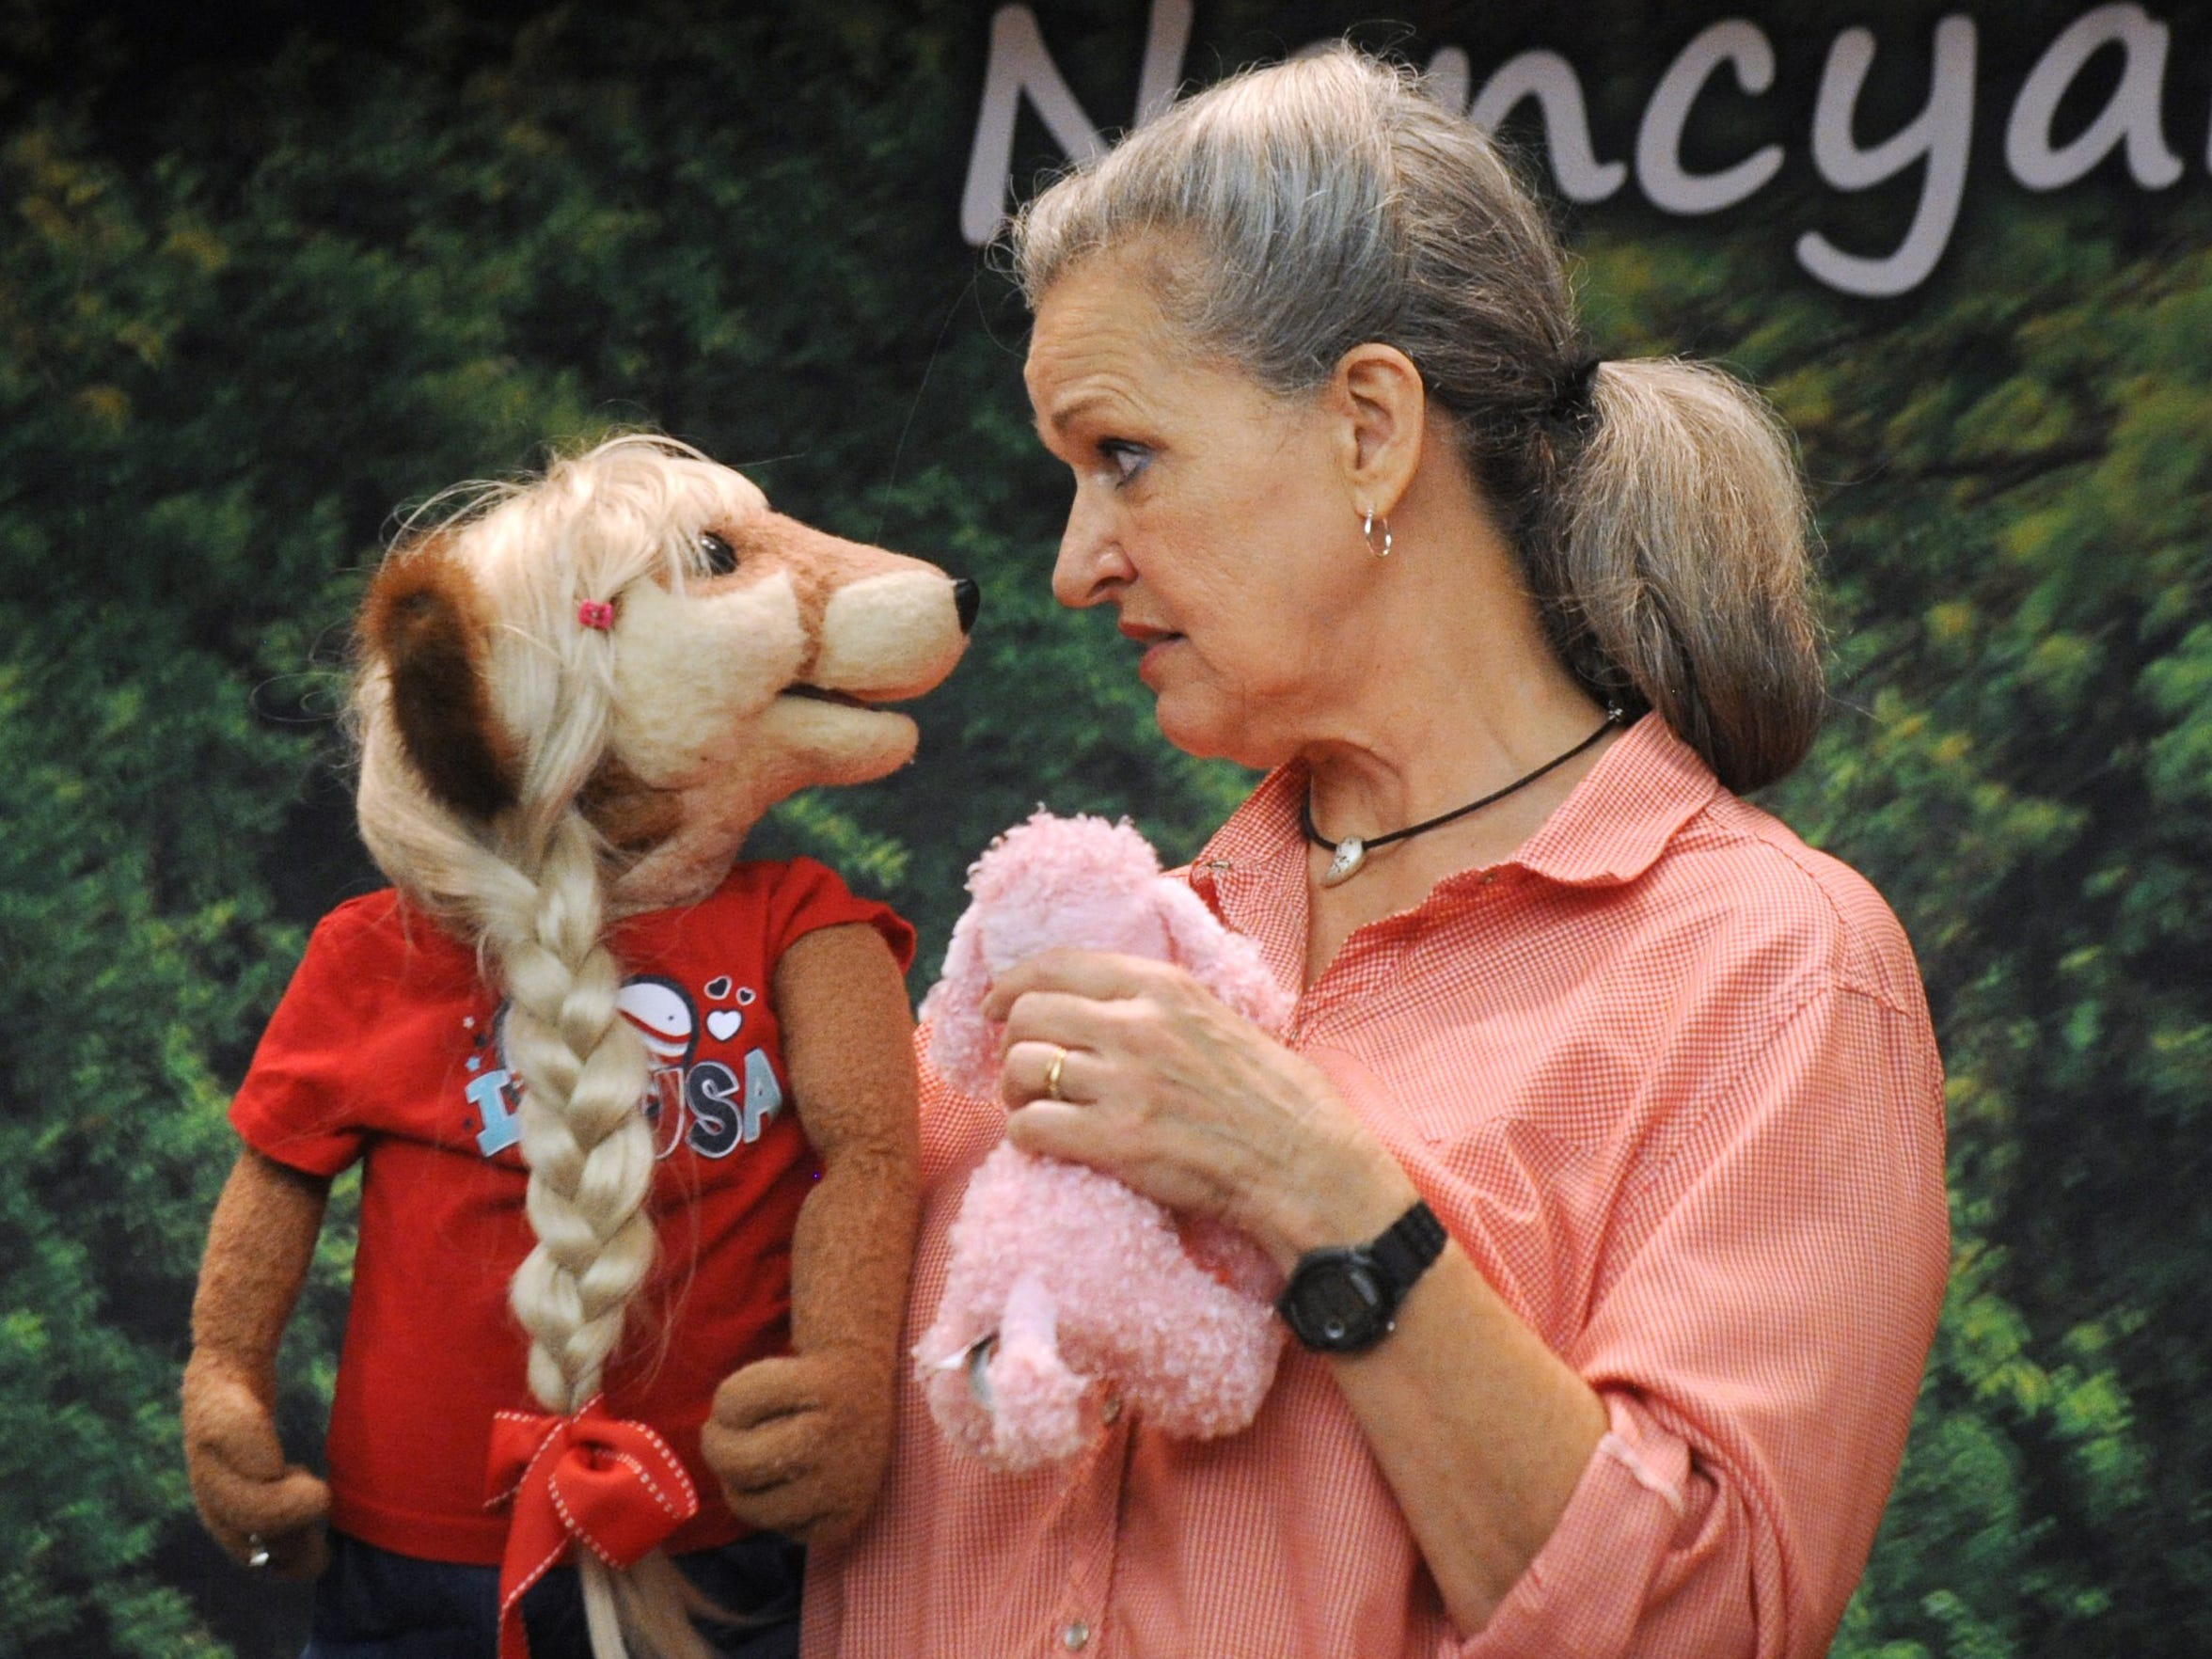 Nancy Worcester presents her ventriloquist show at the main branch of the Abilene Public Library as part of a Young Audiences program in 2015.